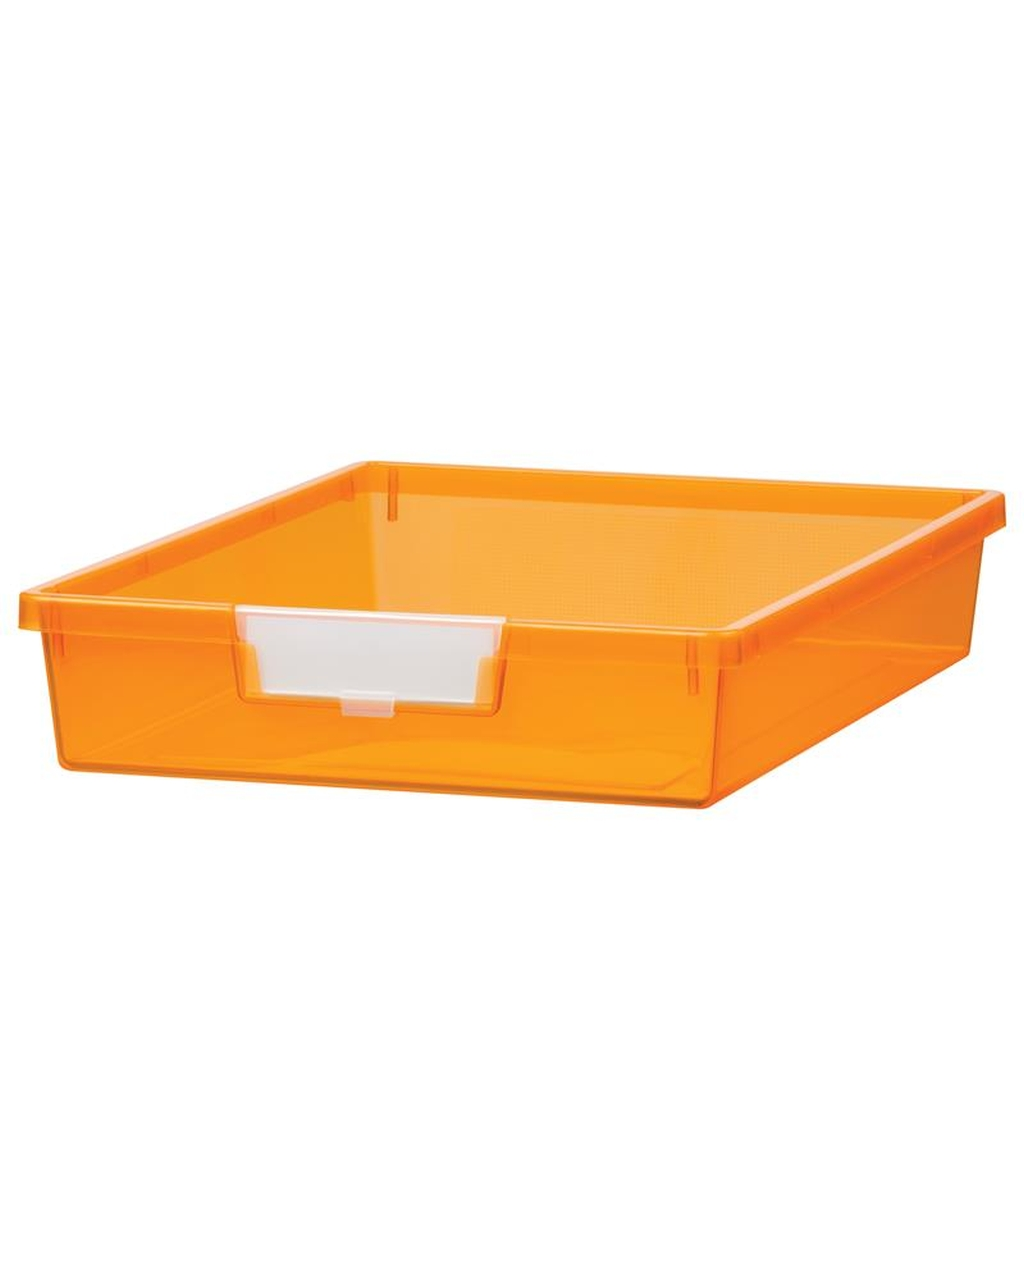 Shatterproof Single Depth Tray - Neon Orange